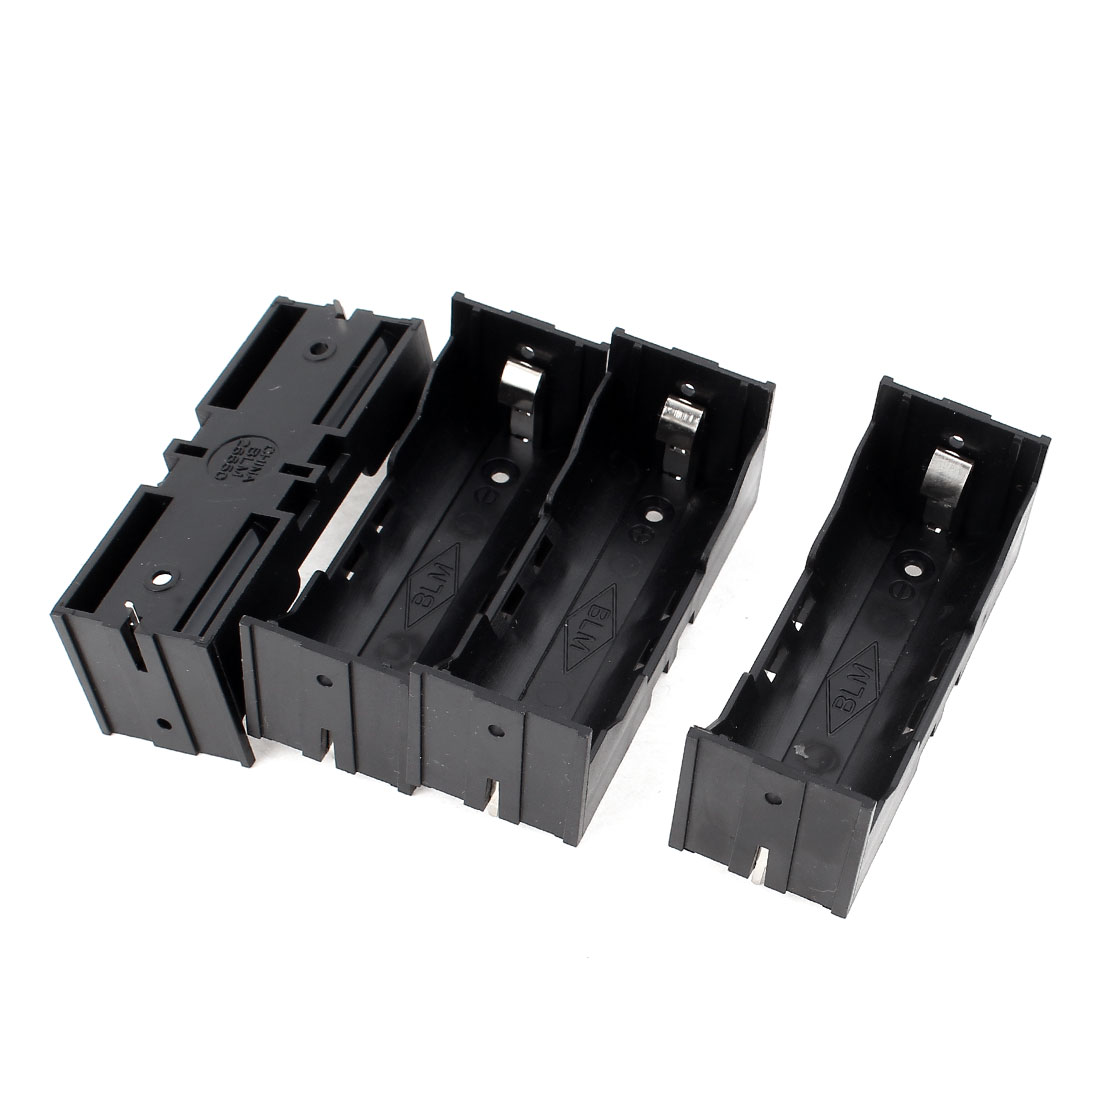 4Pcs Plastic Single 26650 Battery Holder Case Storage Box Black